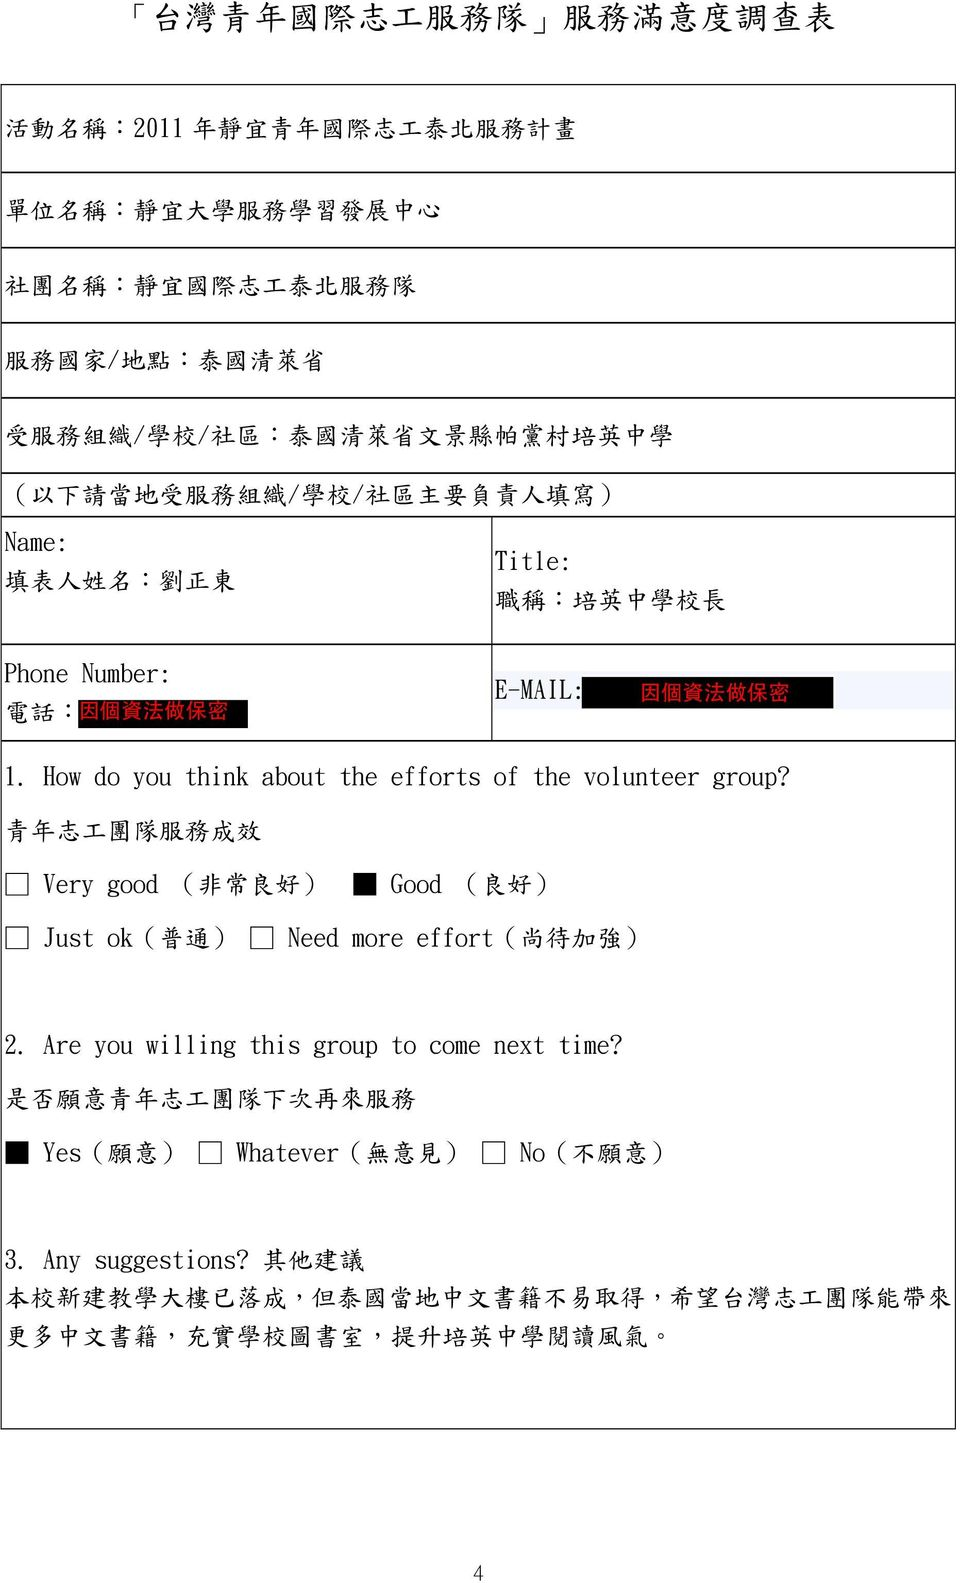 How do you think about the efforts of the volunteer group? 青 年 志 工 團 隊 服 務 成 效 Very good ( 非 常 良 好 ) Good ( 良 好 ) Just ok( 普 通 ) Need more effort( 尚 待 加 強 ) 2.